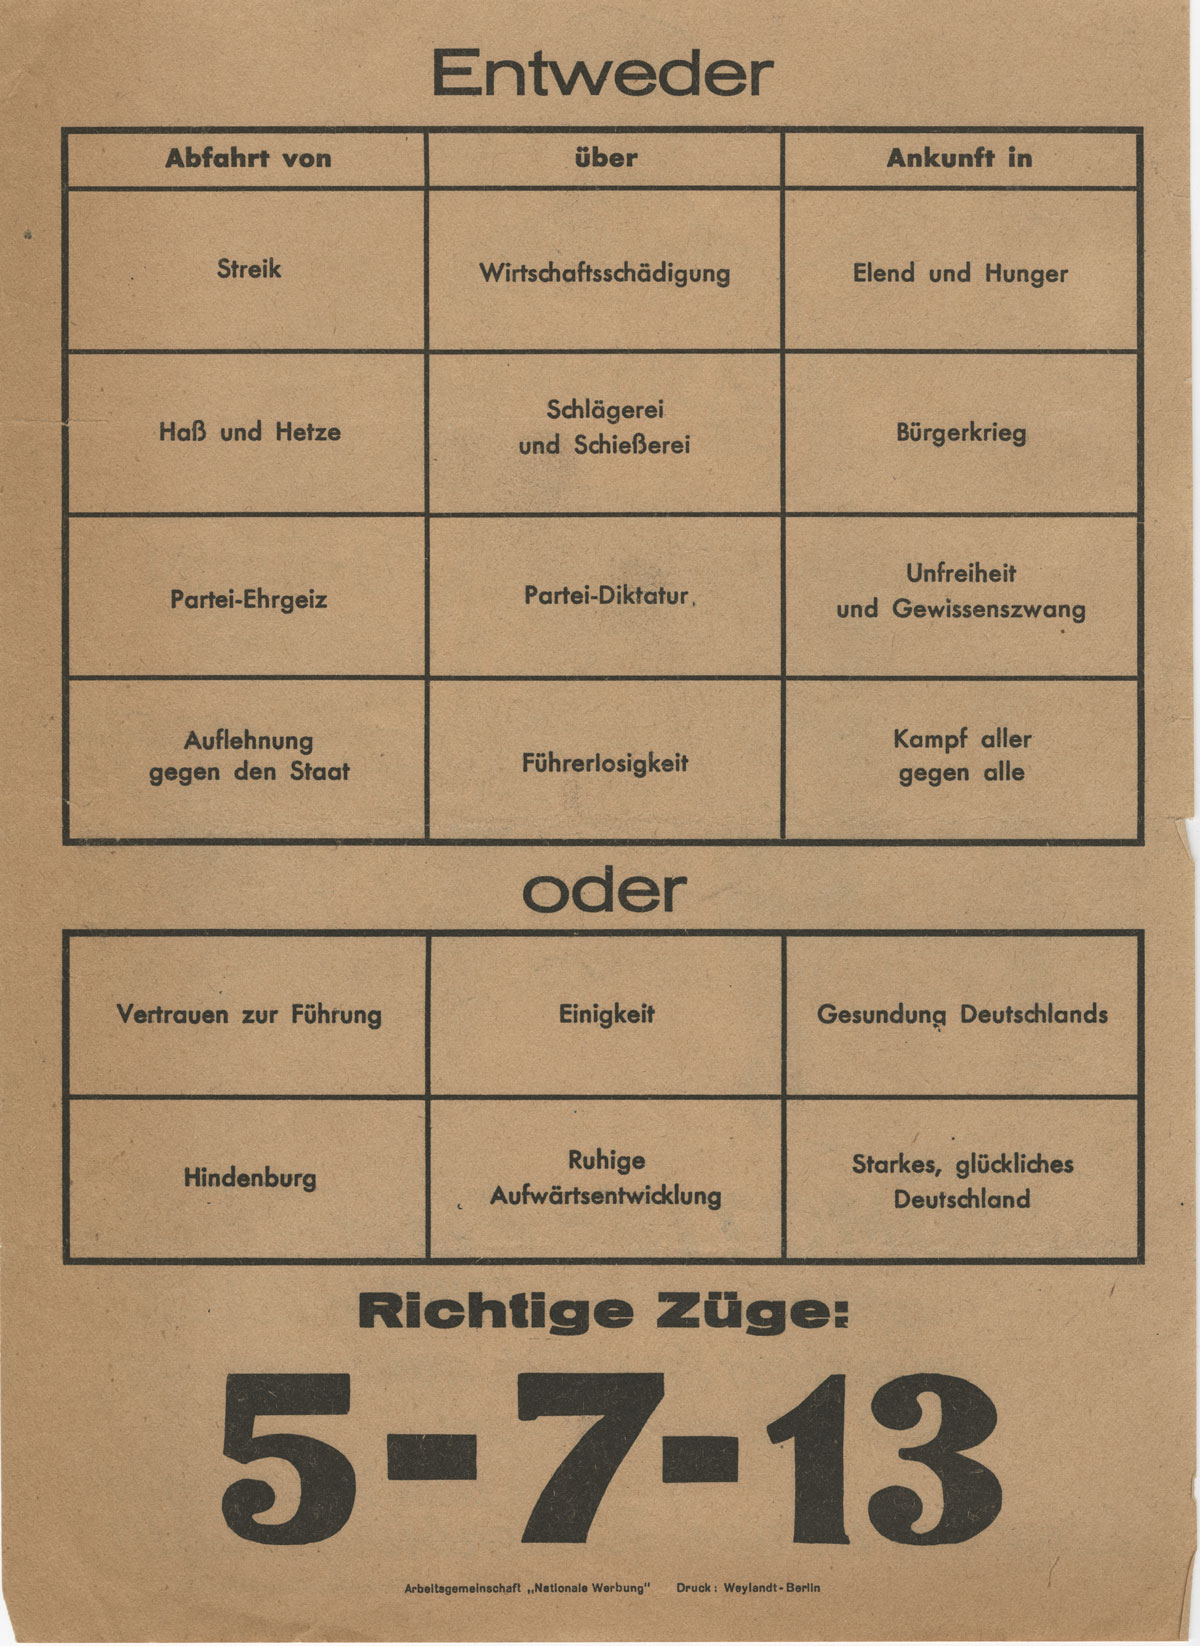 """""""Either / or"""" sheet from the 1932 German elections ephemera collection."""